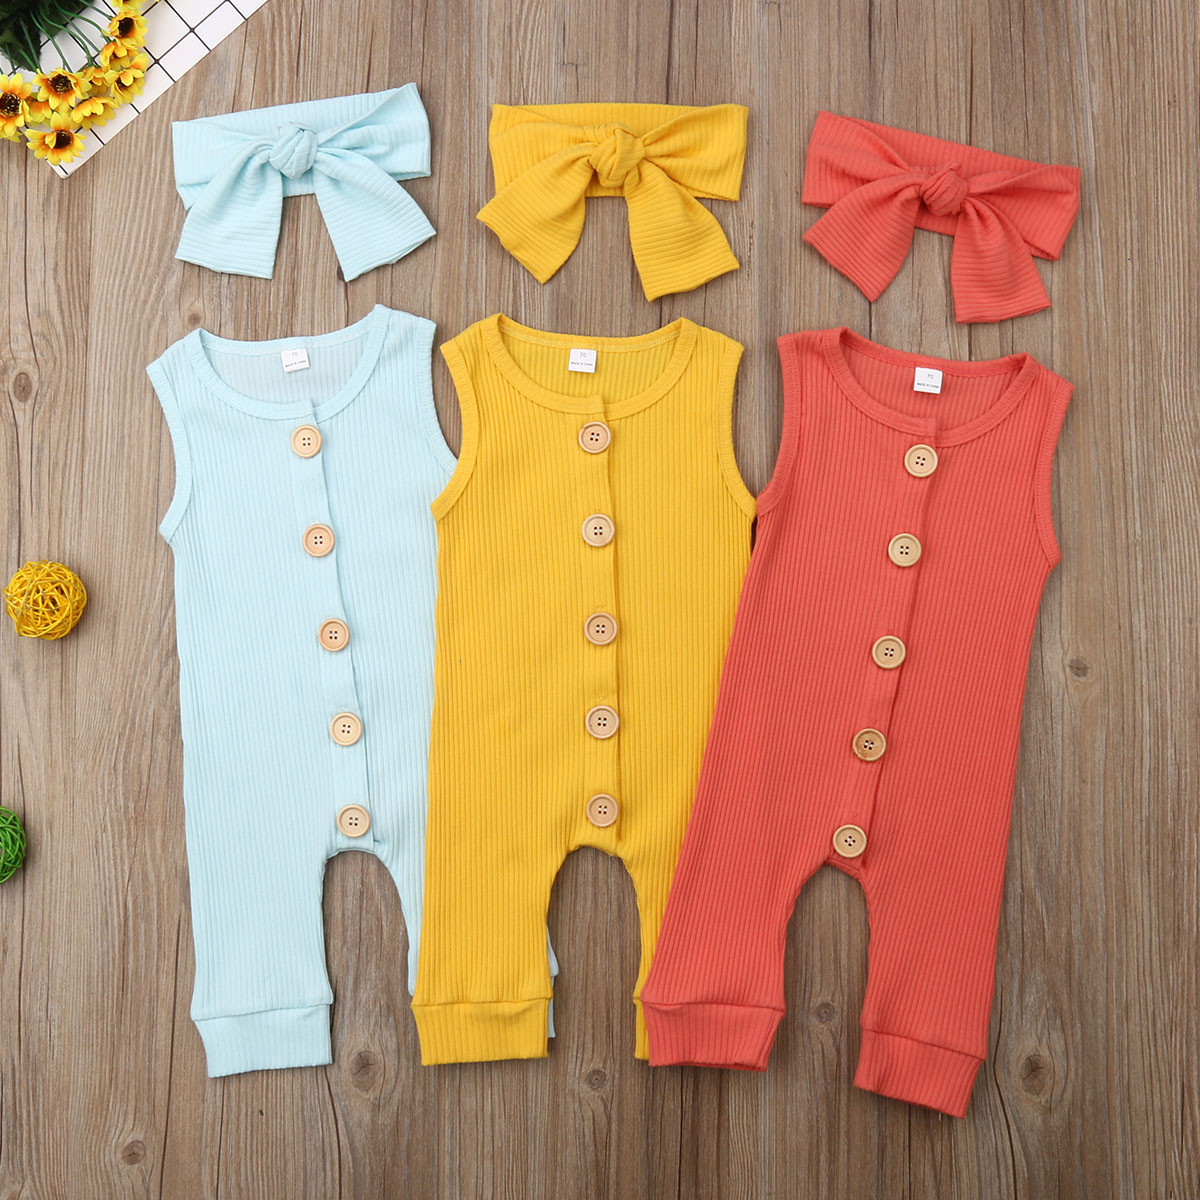 Emmababy Newborn Infant Baby Girl Boy Outfit 2pcs